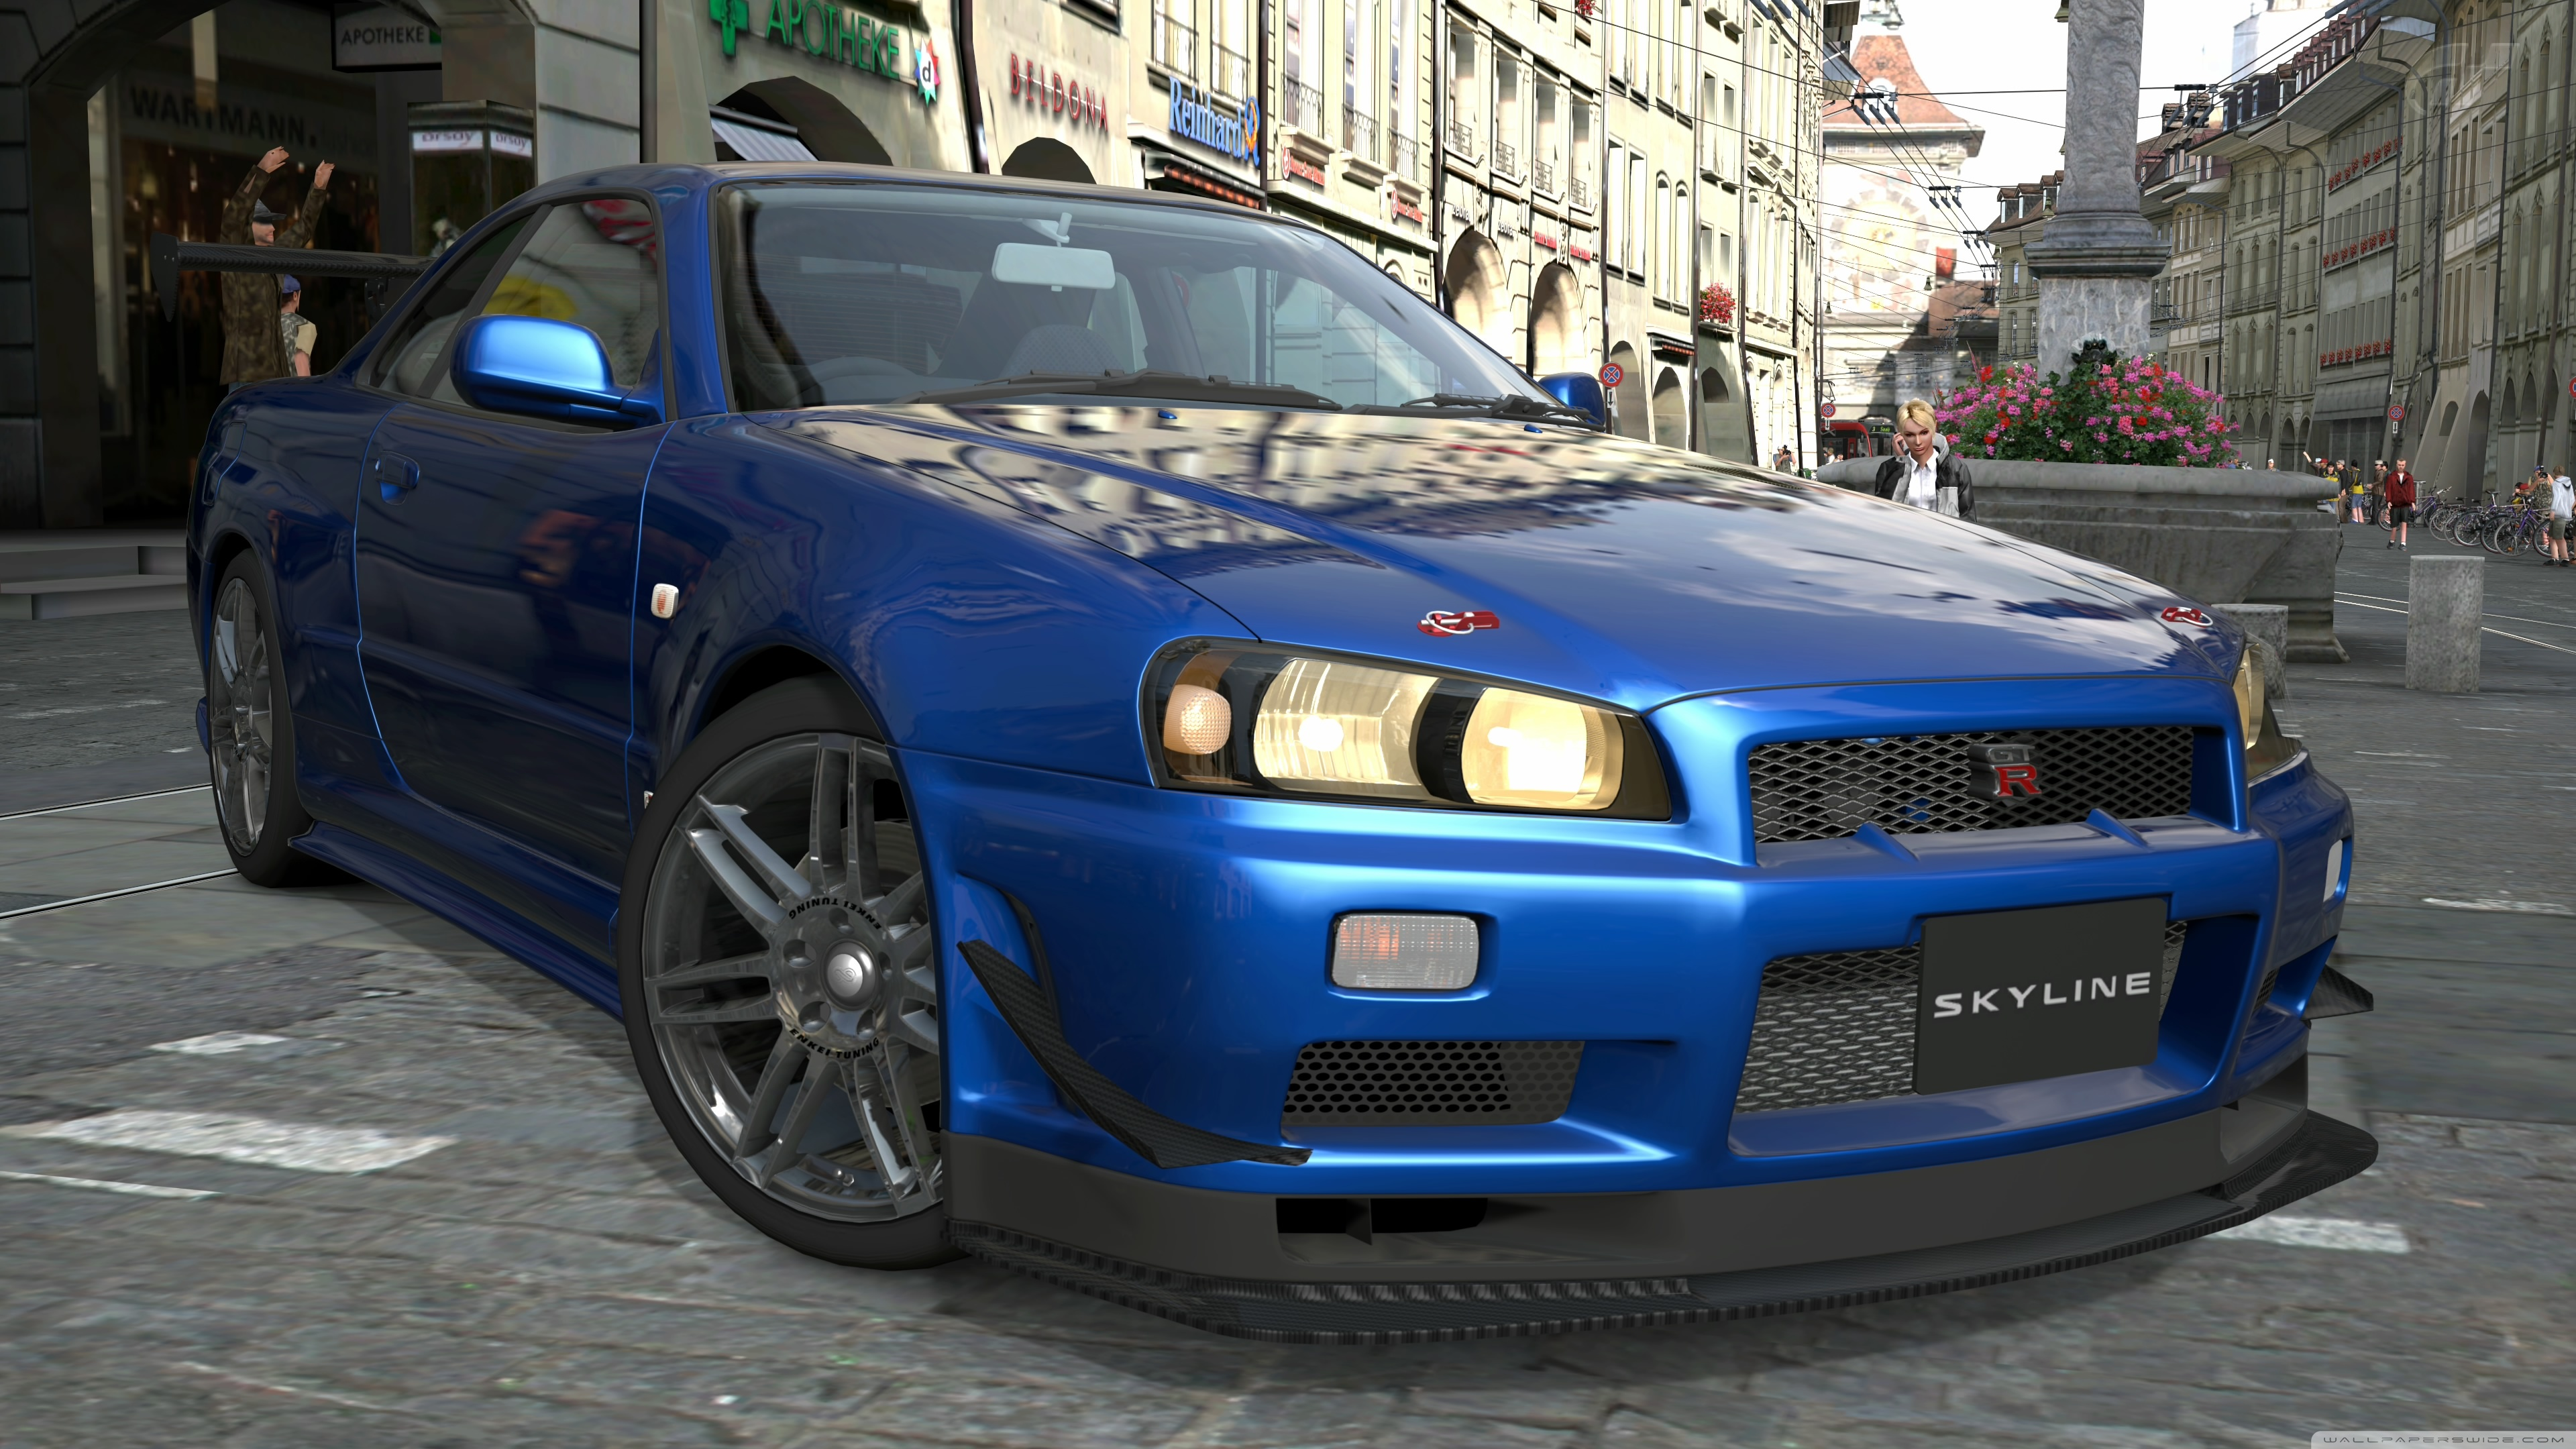 Nissan Skyline R34 Uhd 2607124 Hd Wallpaper Backgrounds Download